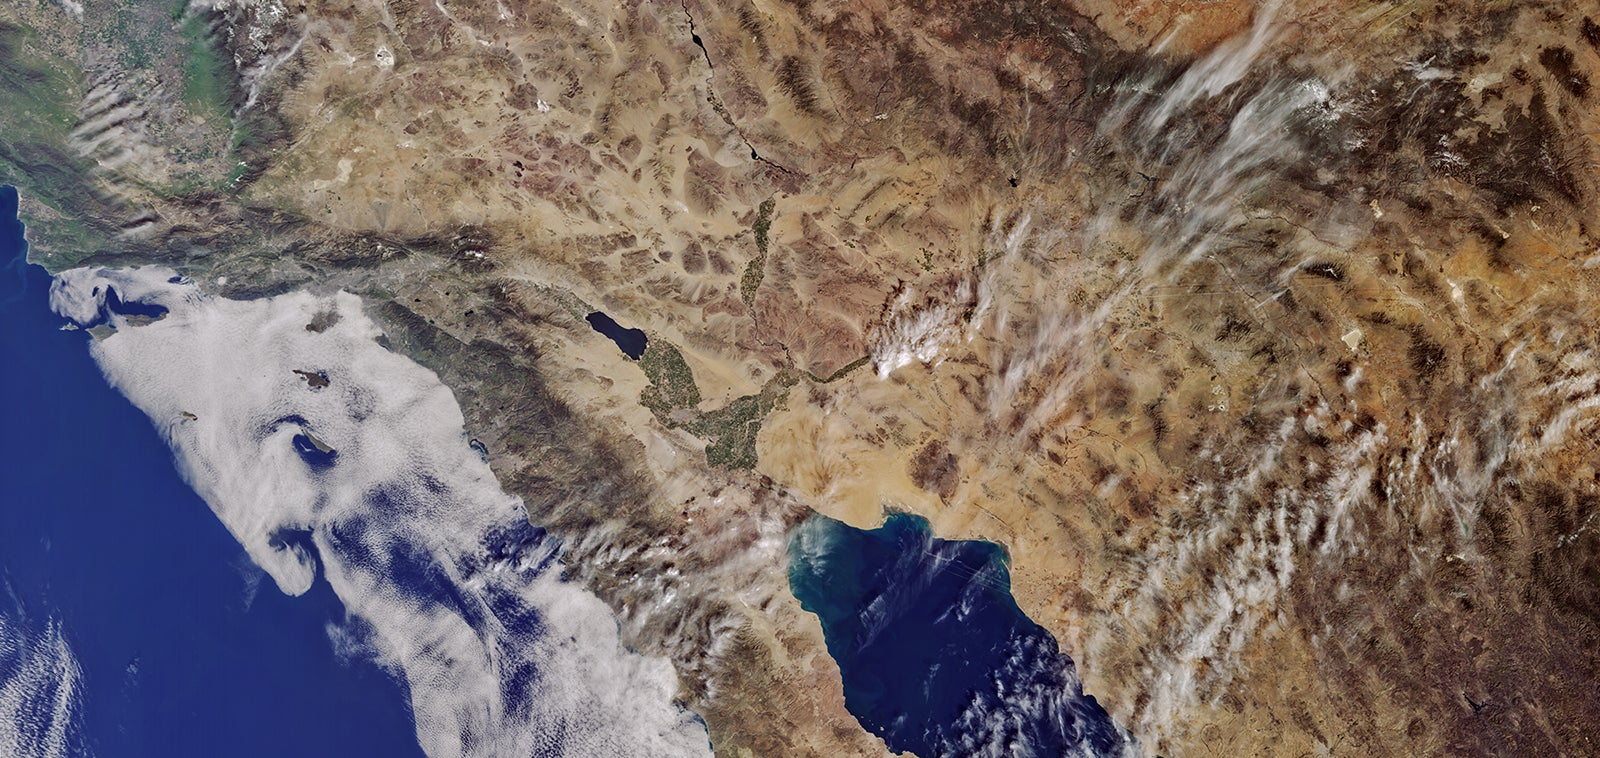 This Is the First Image From Europe's Sentinel-3A Satellite